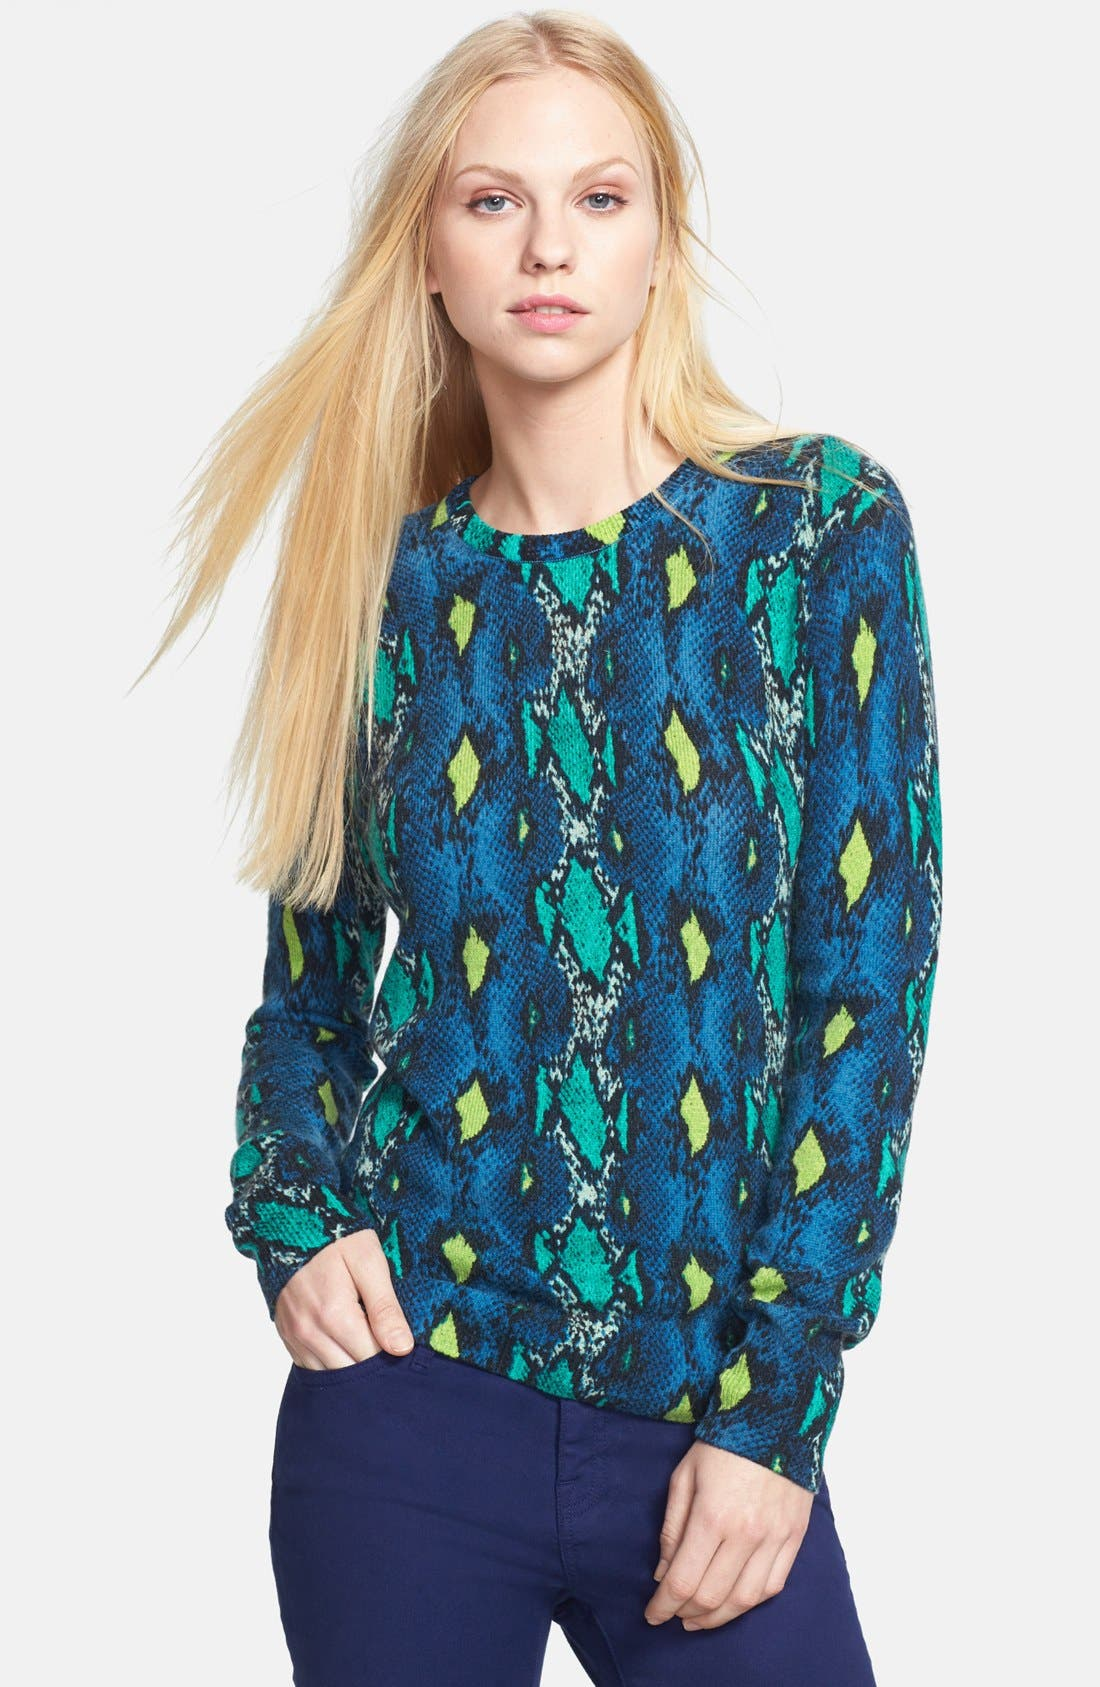 Alternate Image 1 Selected - Equipment 'Sloane' Snake Pattern Cashmere Sweater